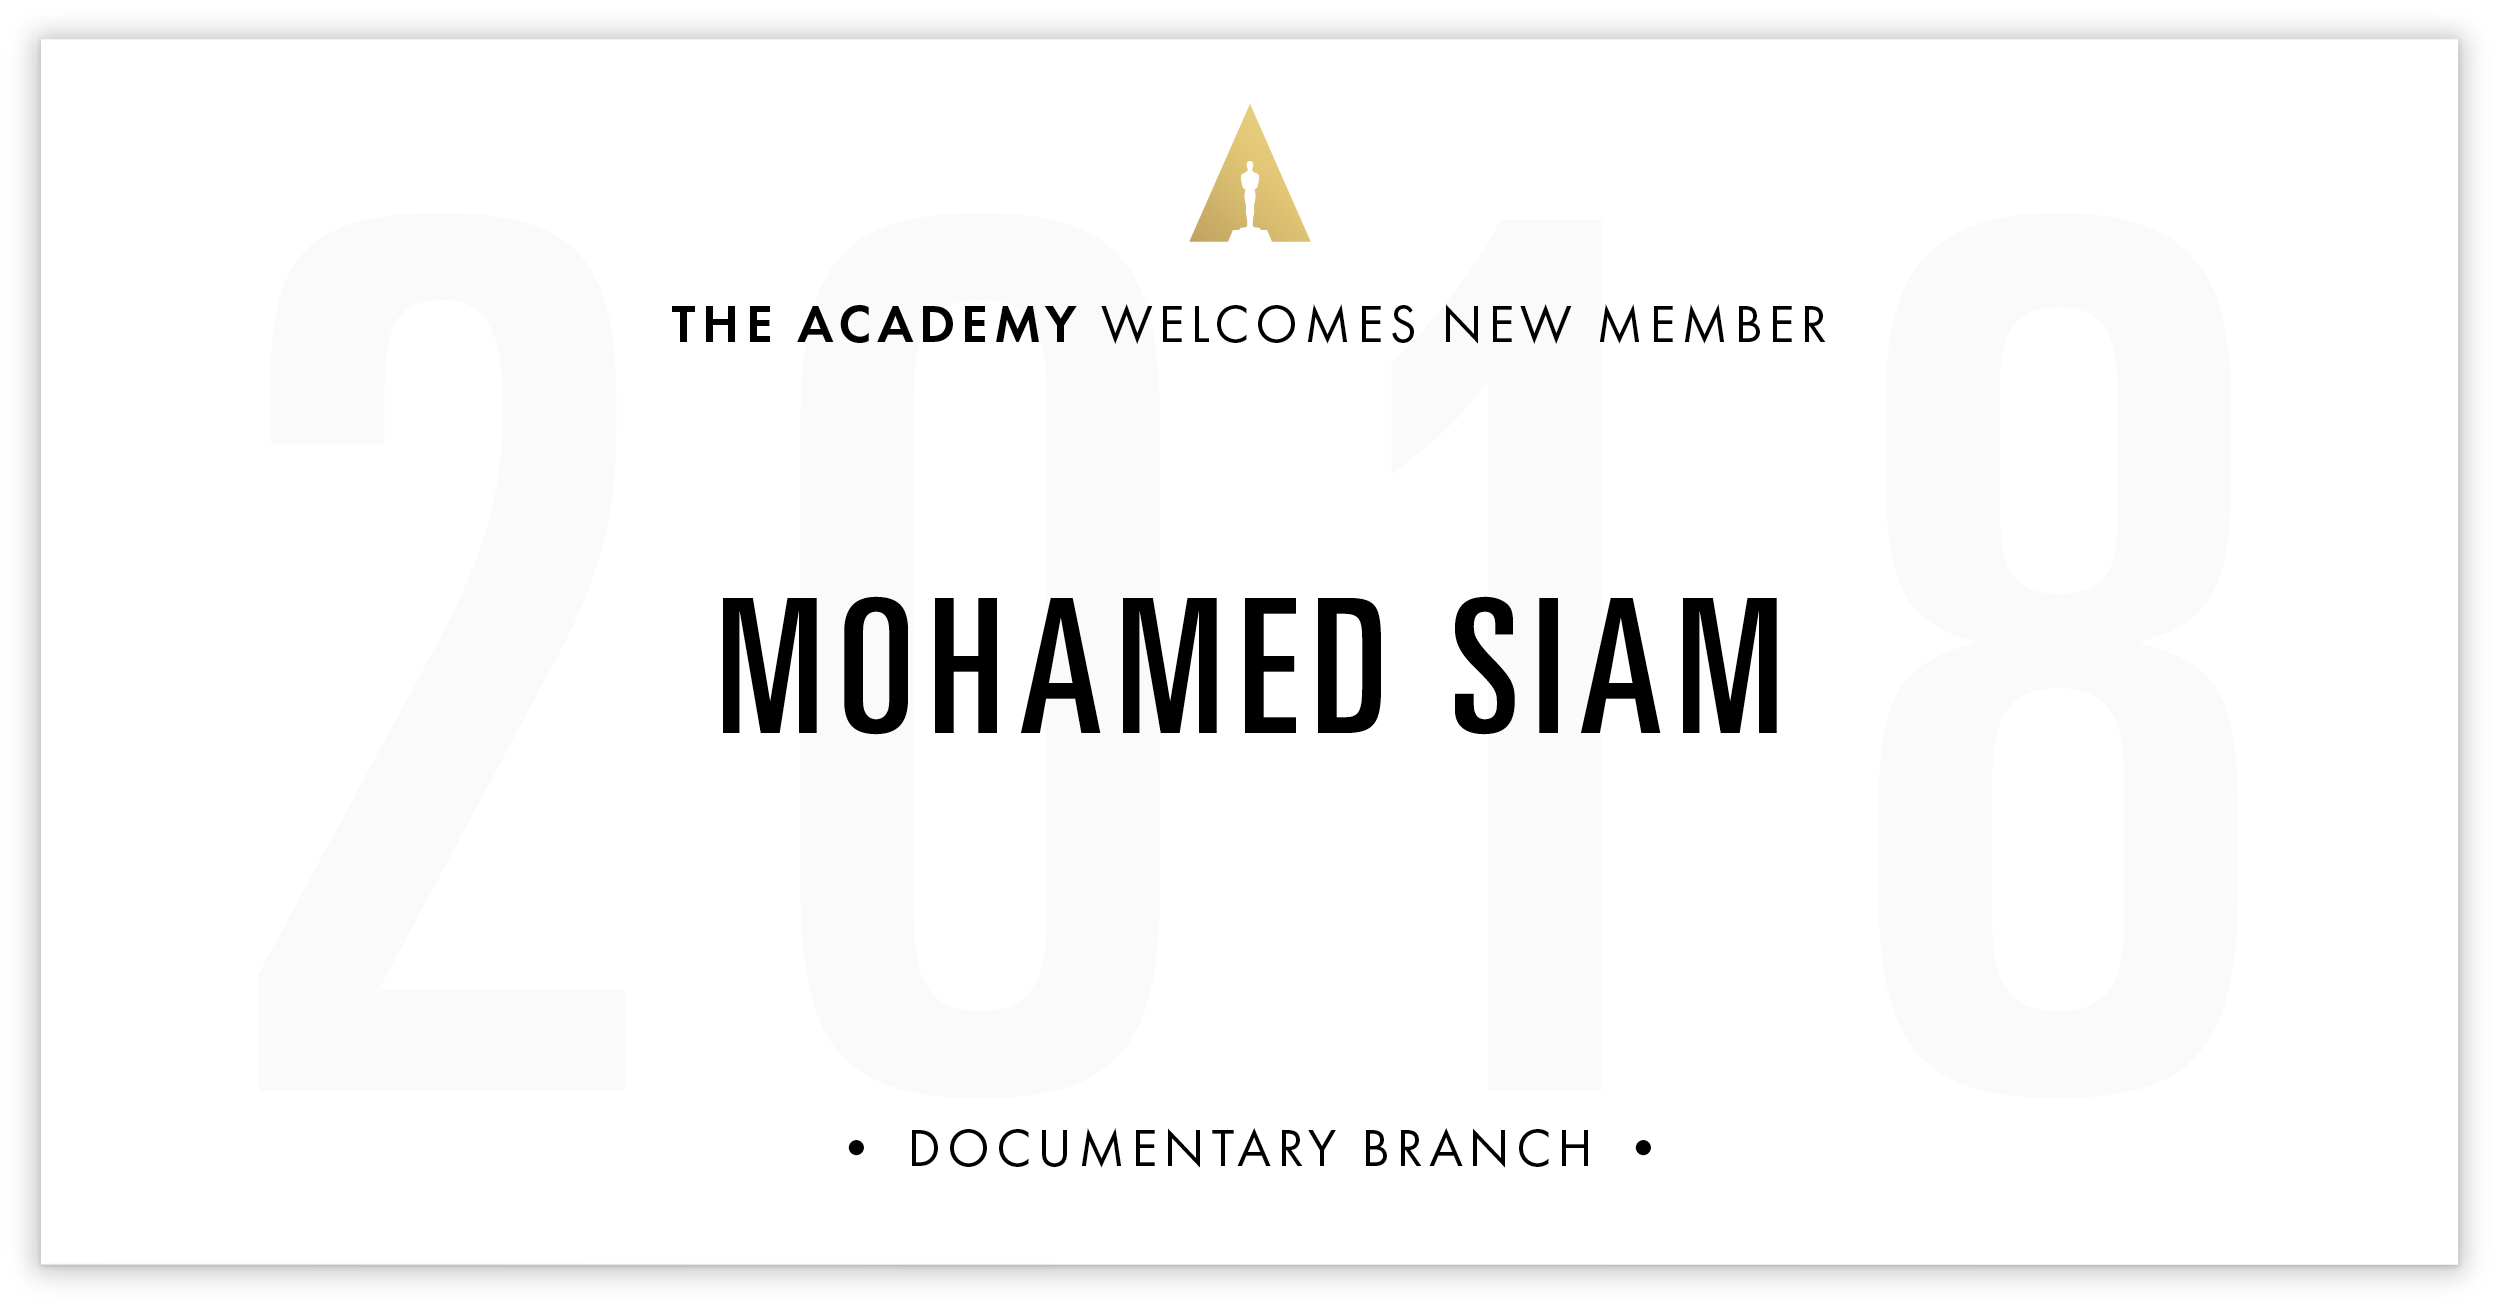 Mohamed Siam is invited!